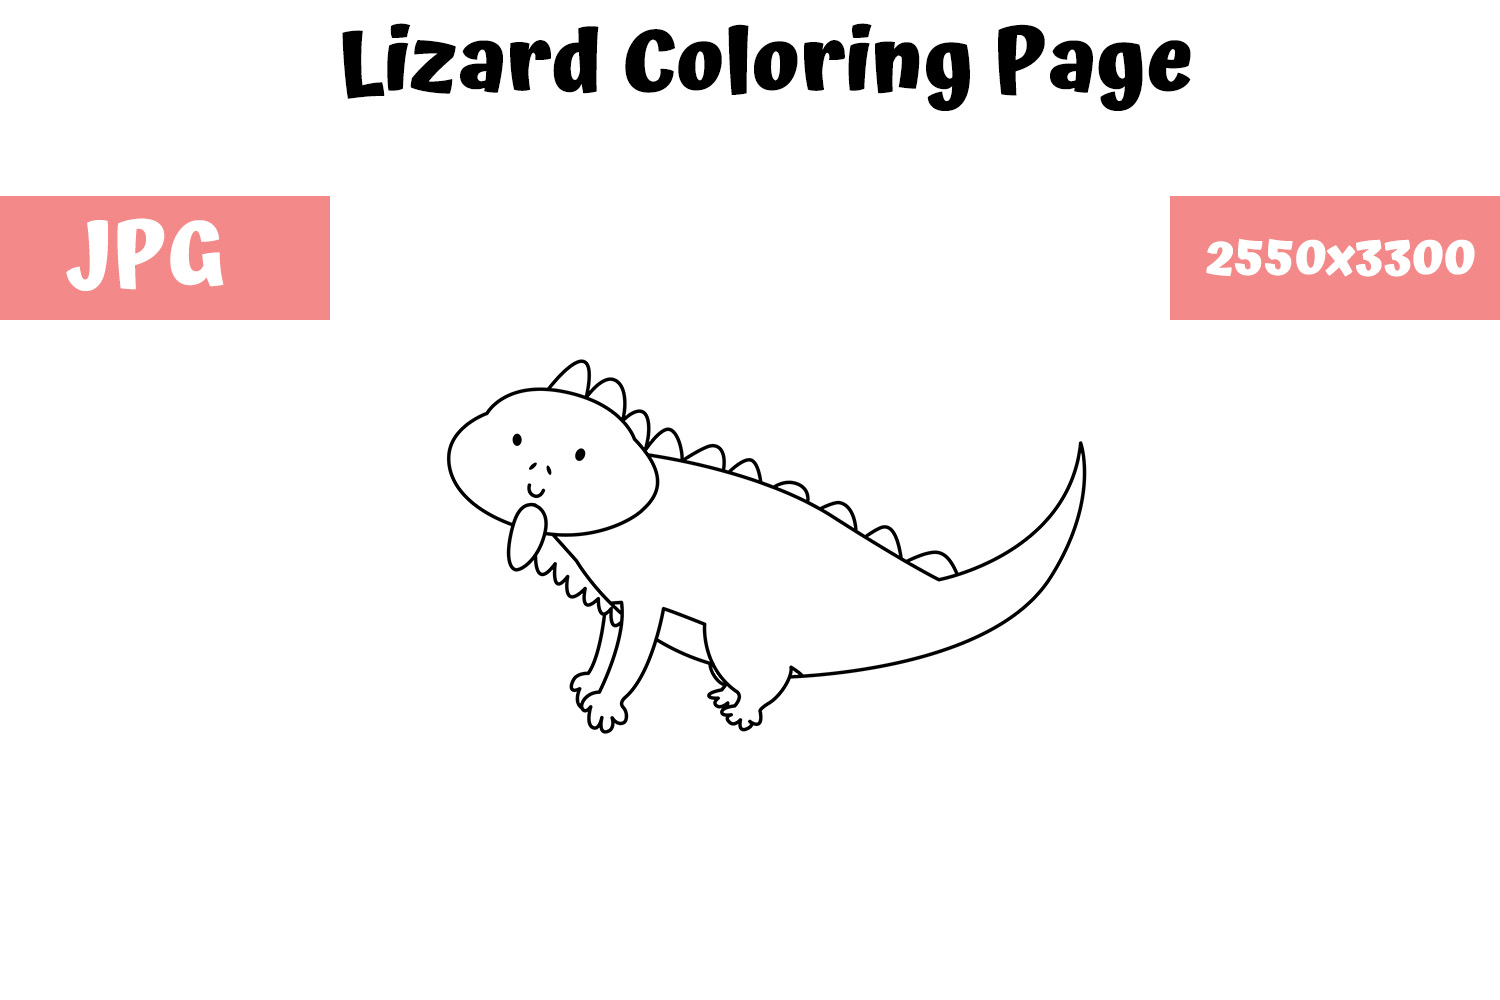 Reptile Coloring Pages - Free Printable - Easy Peasy and Fun | 1000x1500